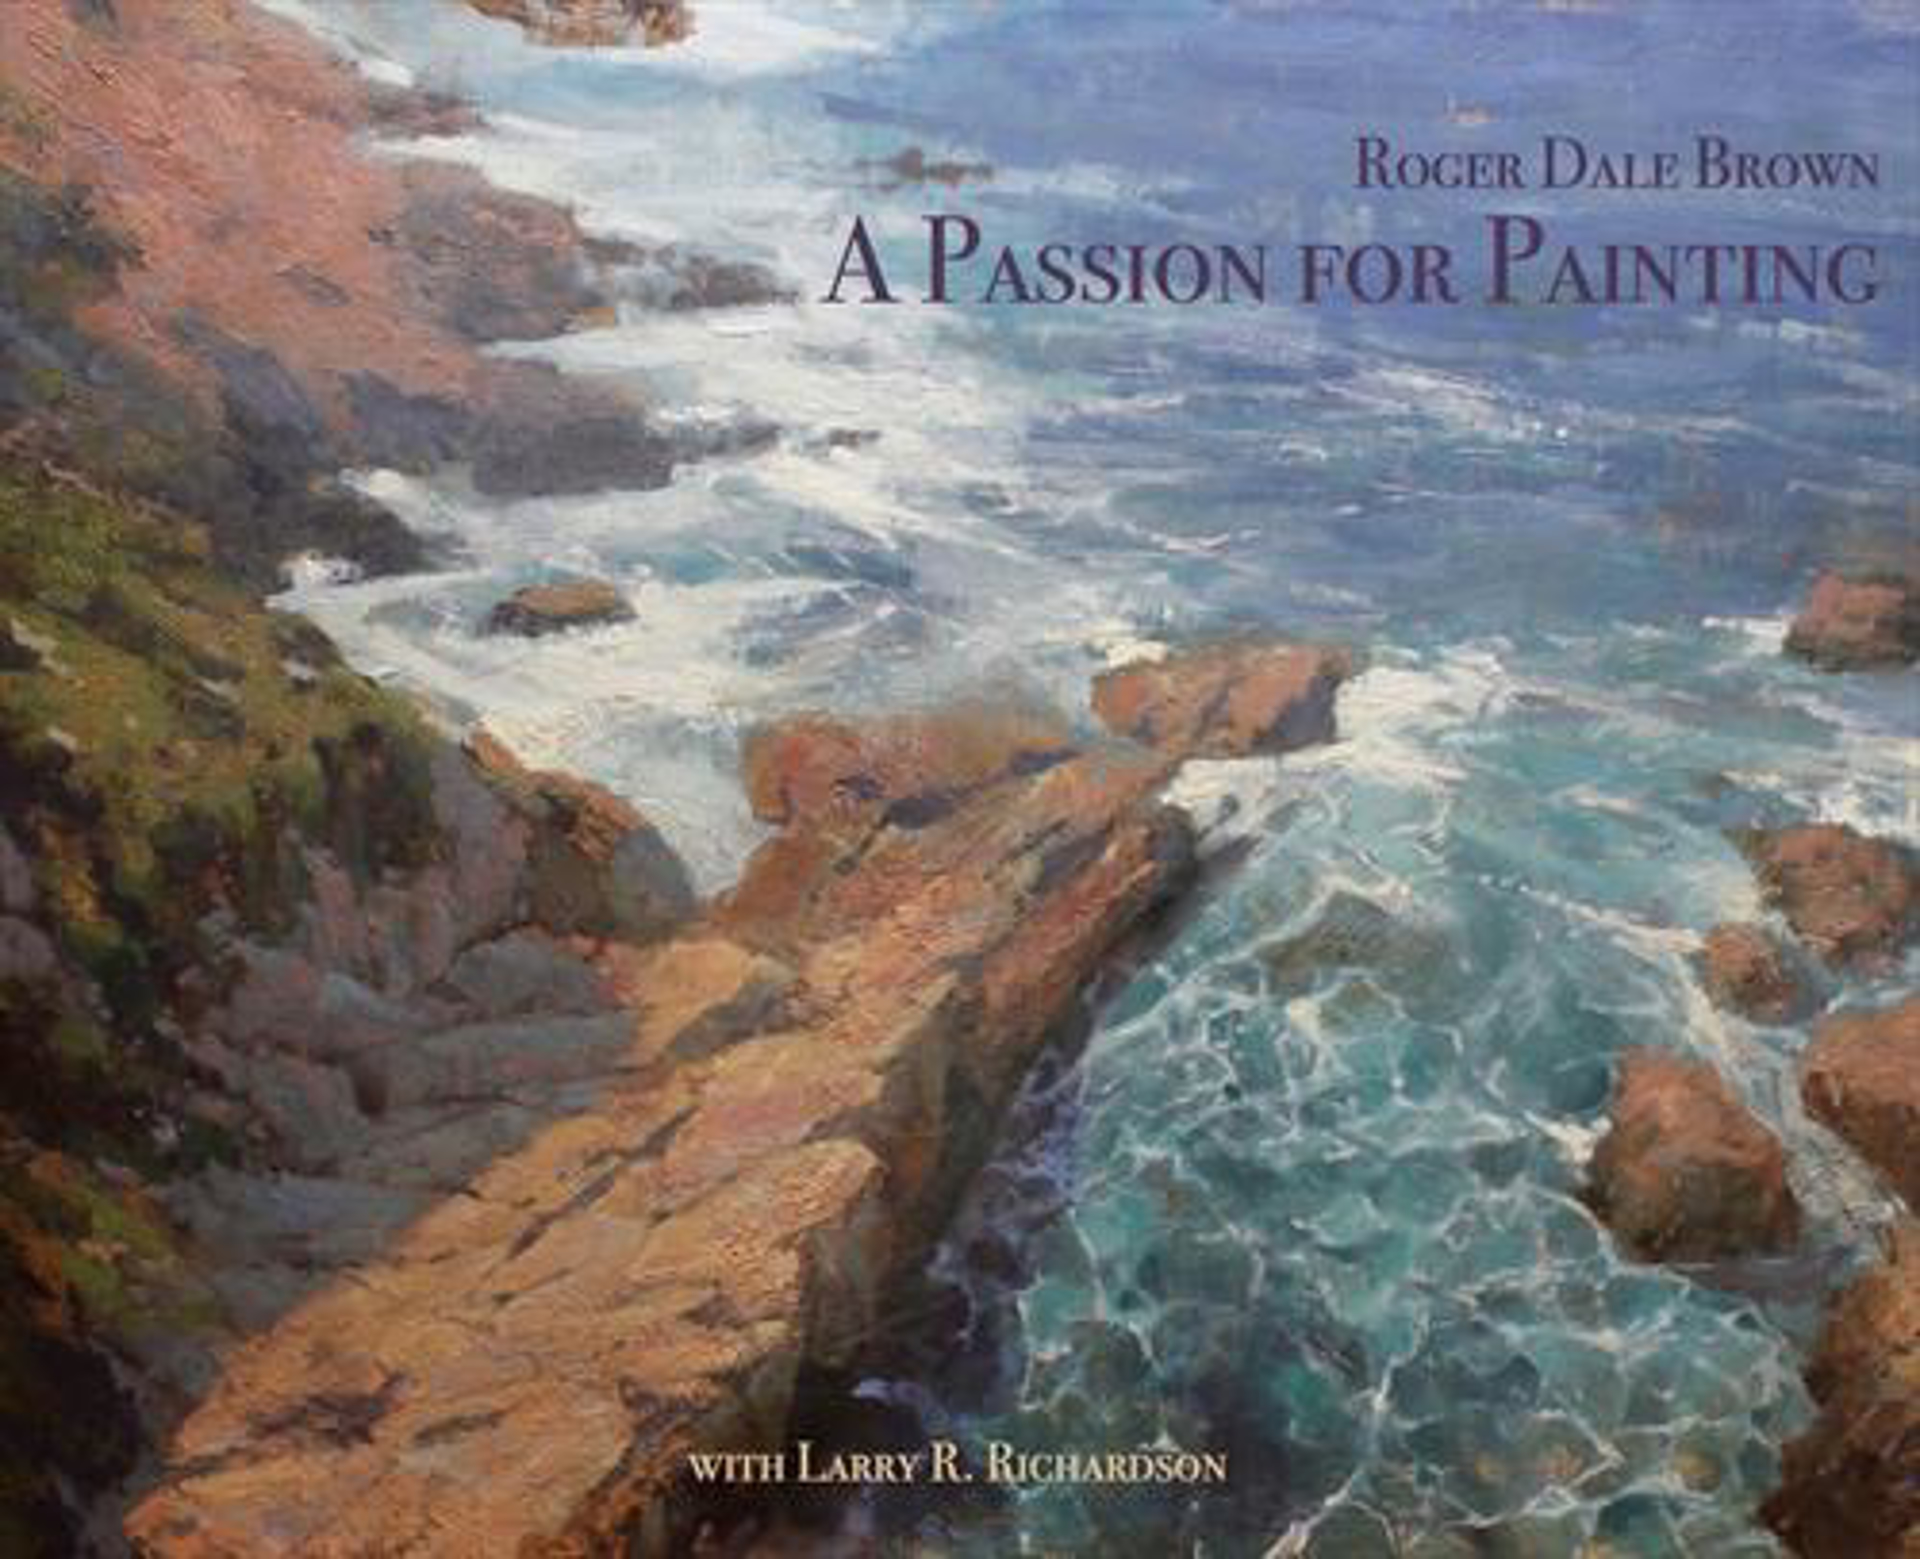 Passion For Painting by Roger Dale Brown